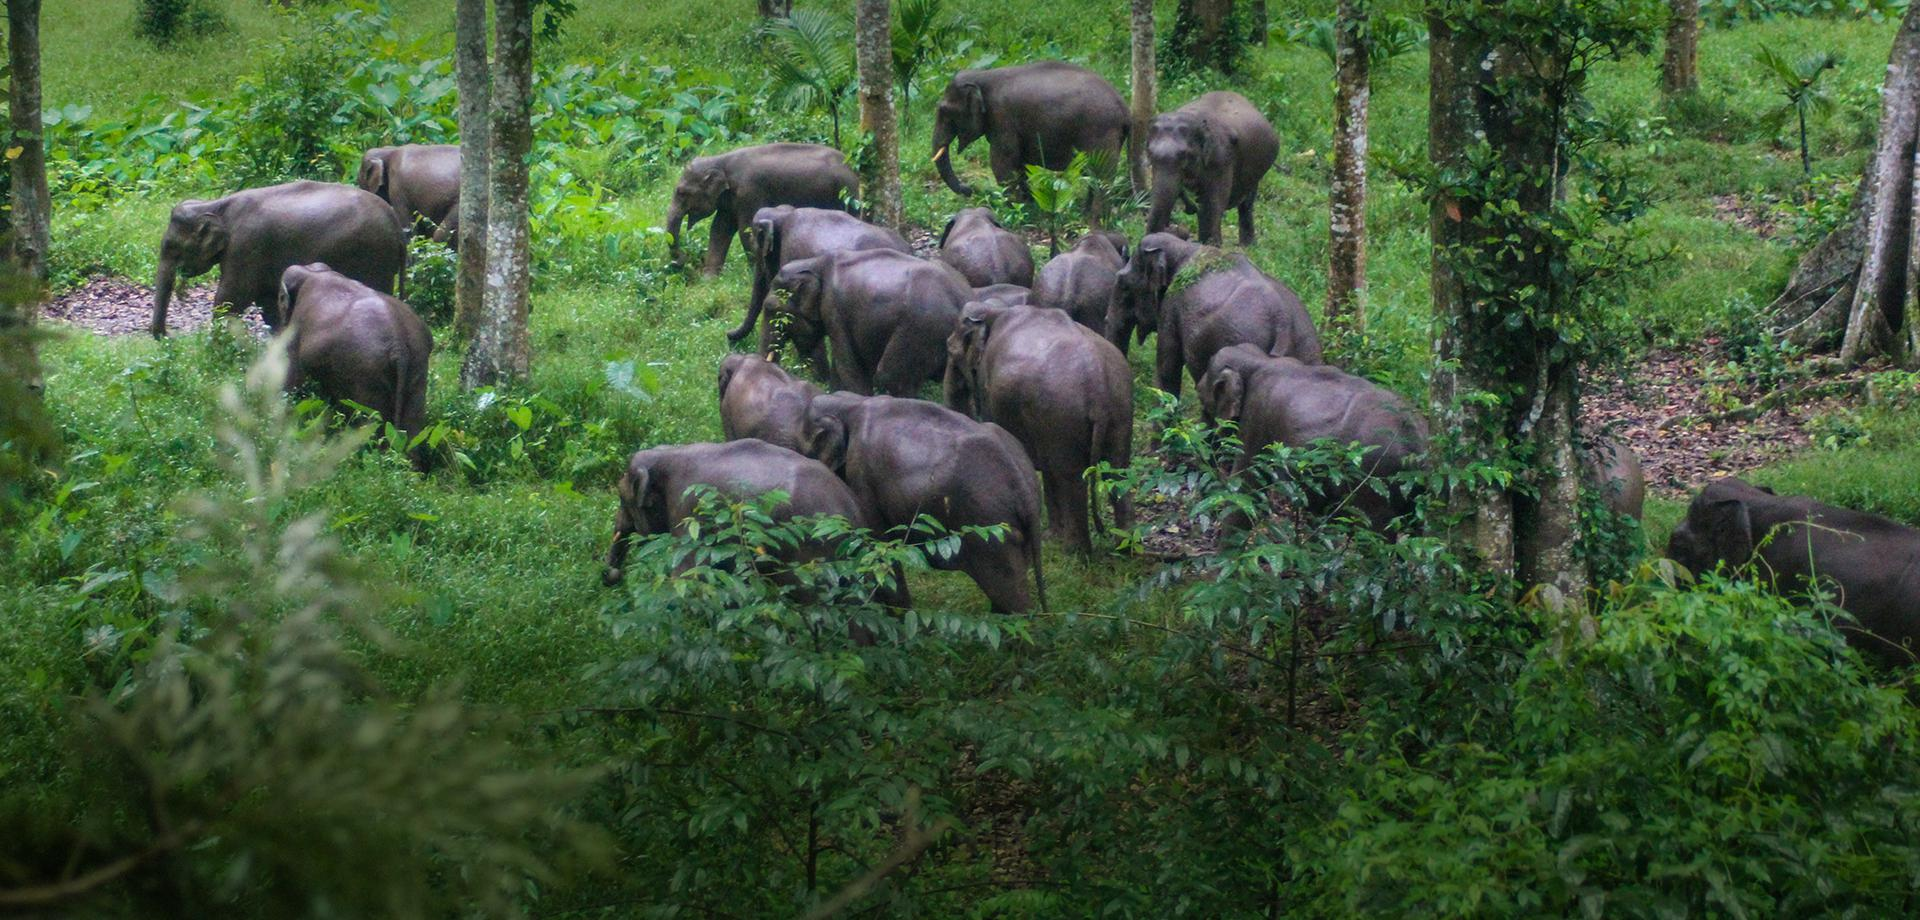 Amidst the home of elephants, coffee blooms in abundance - Tata Coffee